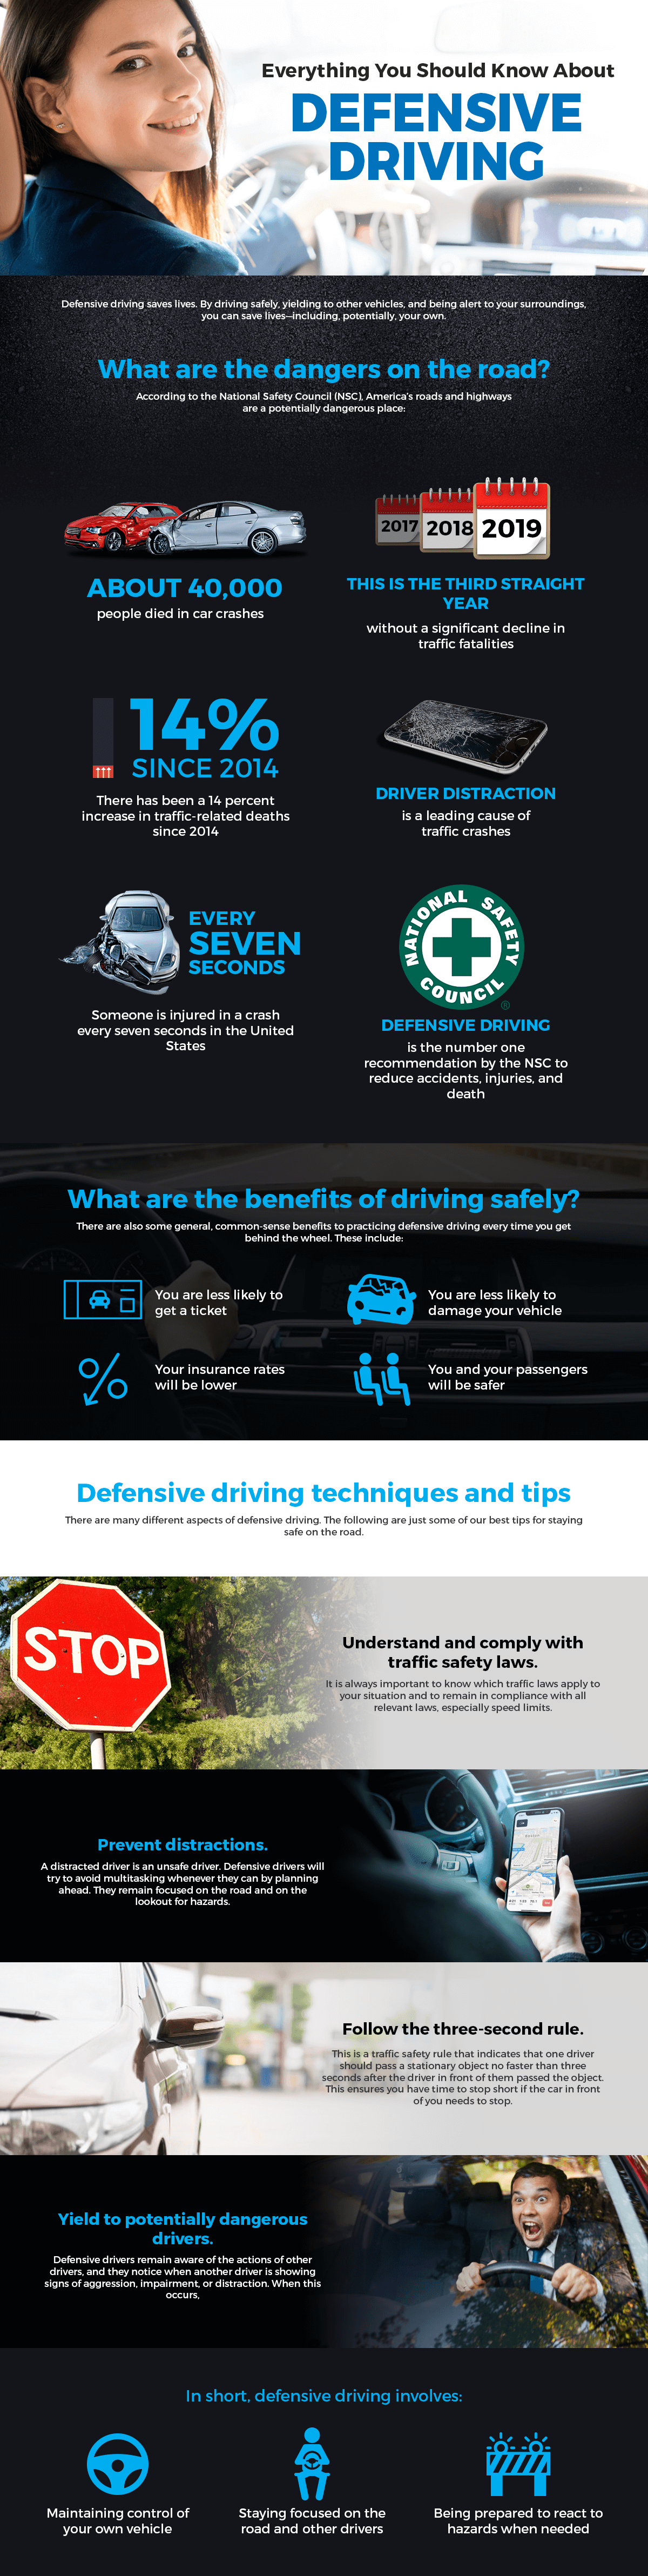 defensive driving infographic